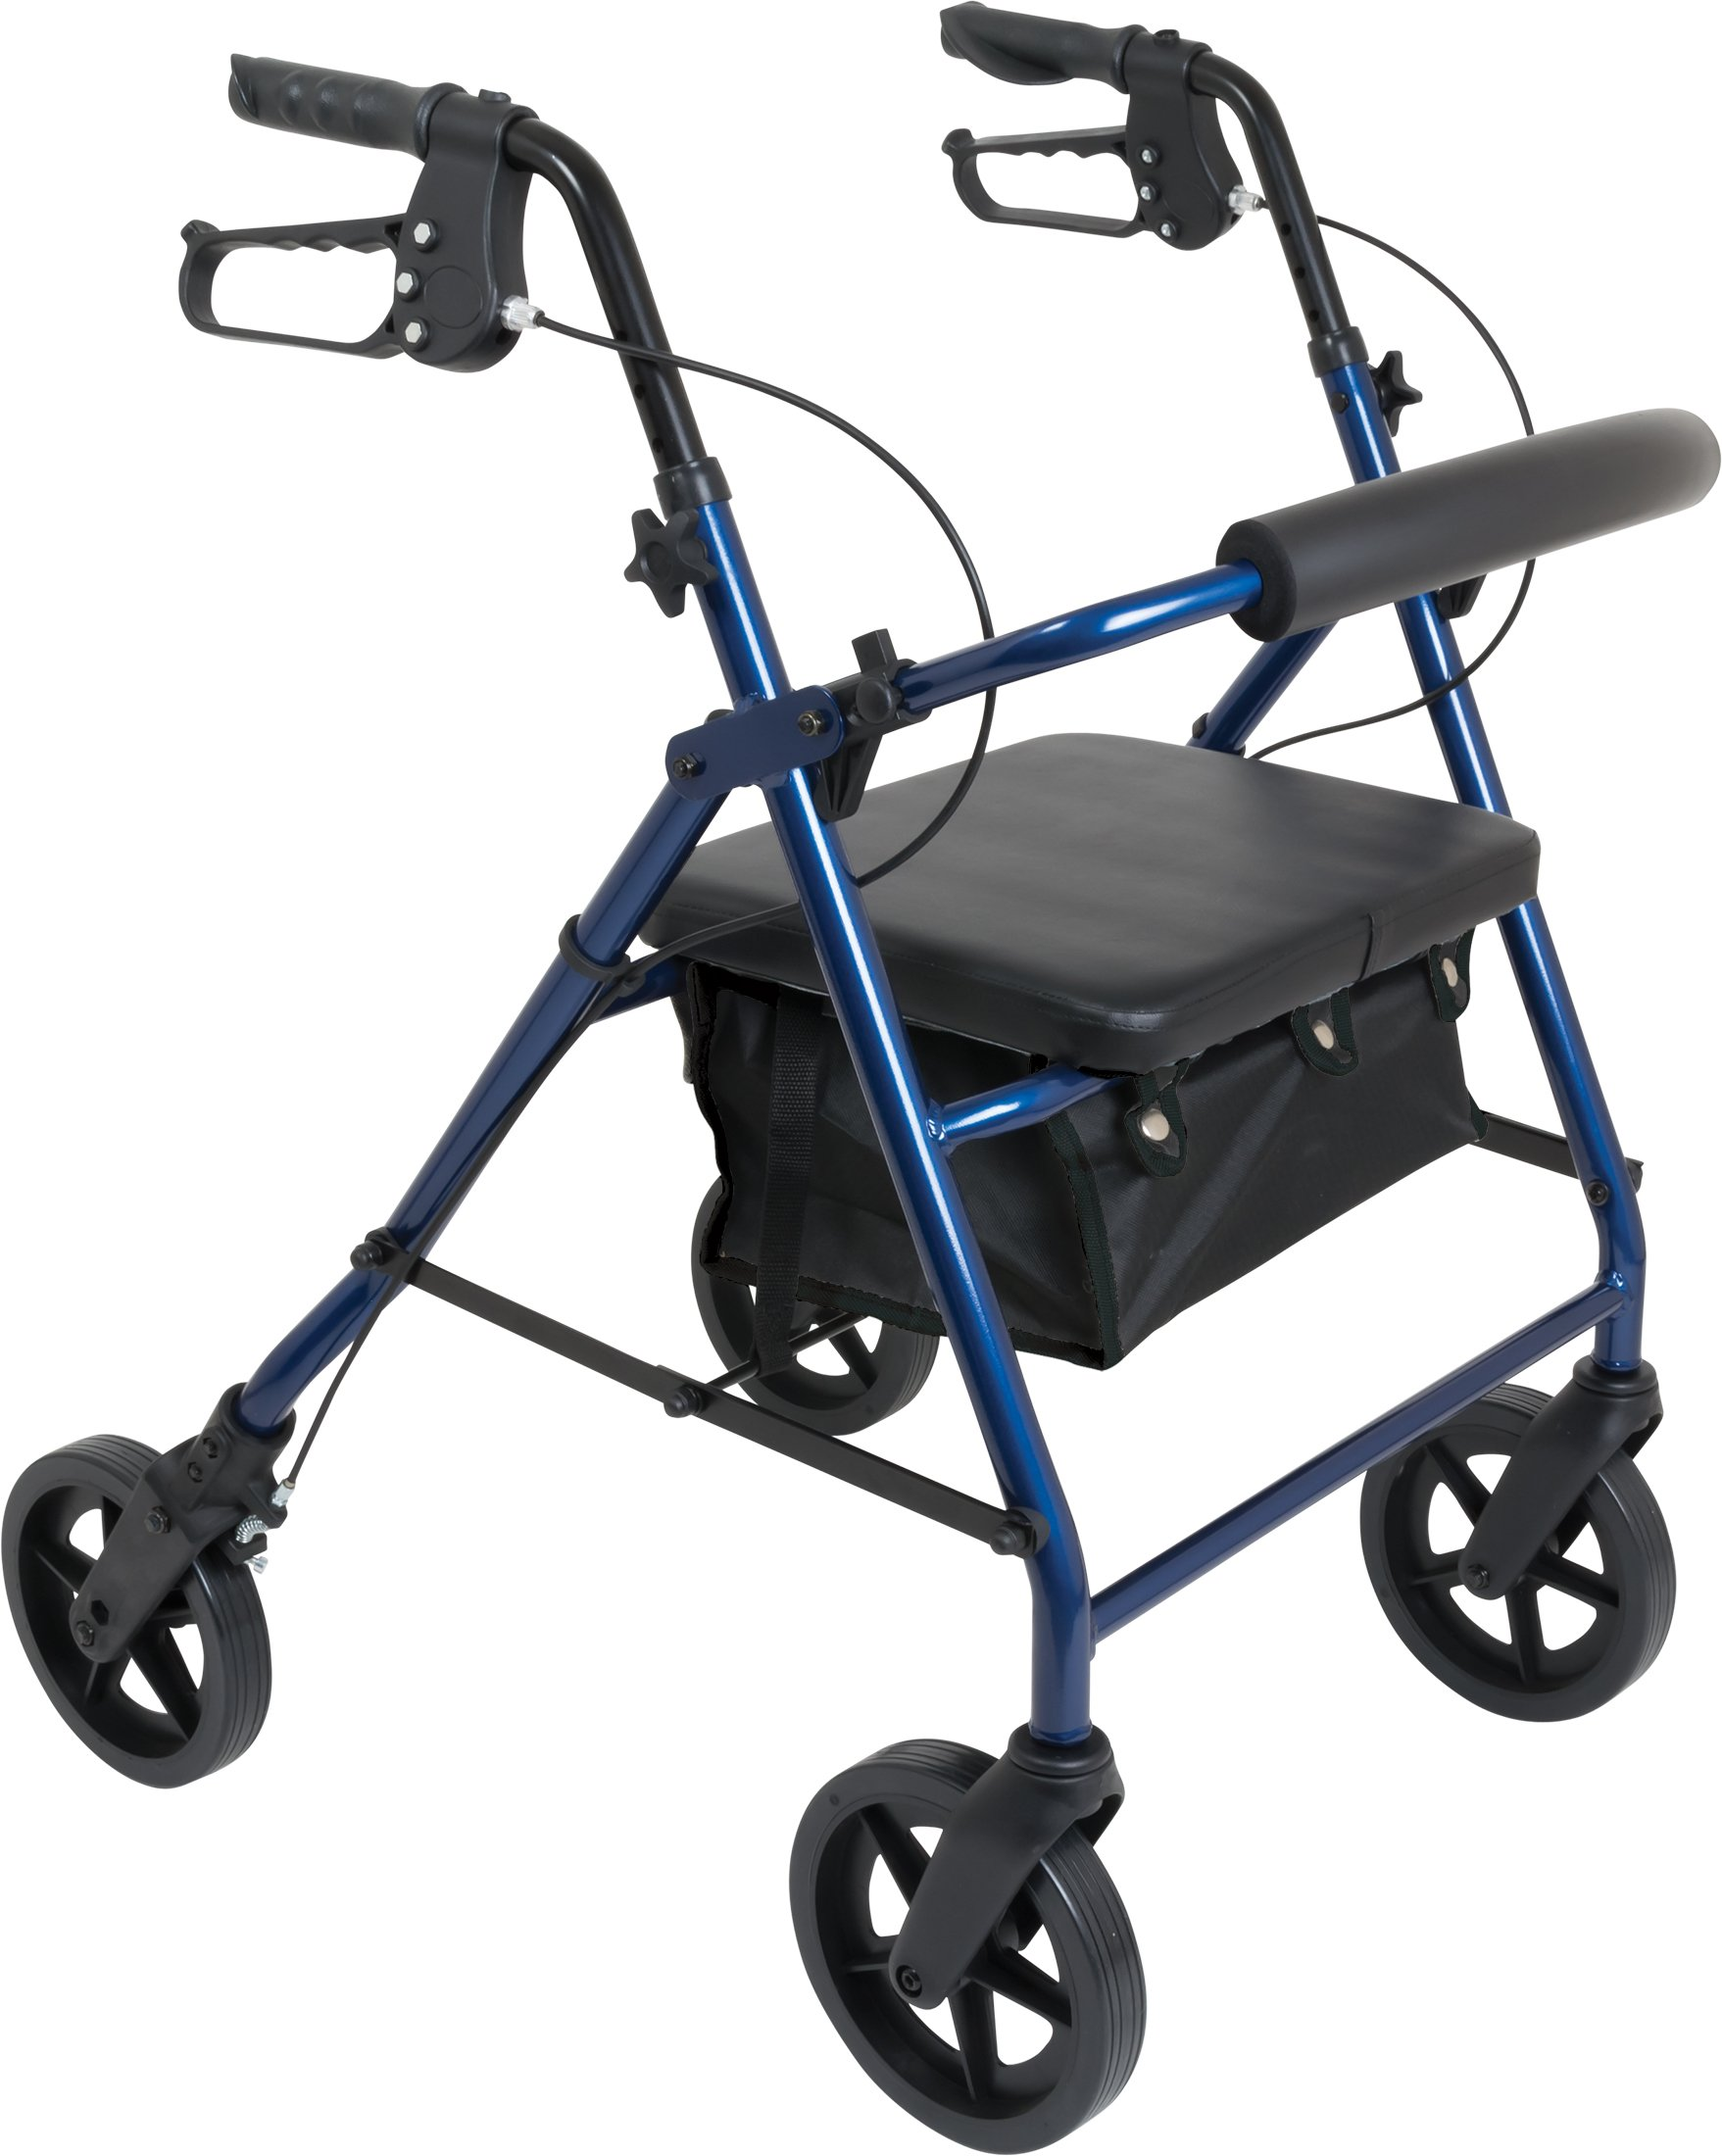 ProBasics Aluminum Deluxe Rollator with 8-inch Wheels, Padded Seat and Backrest, Height Adjustable Handles, Folds for Storage & Transport, 300 Pound Weight Capacity, Blue